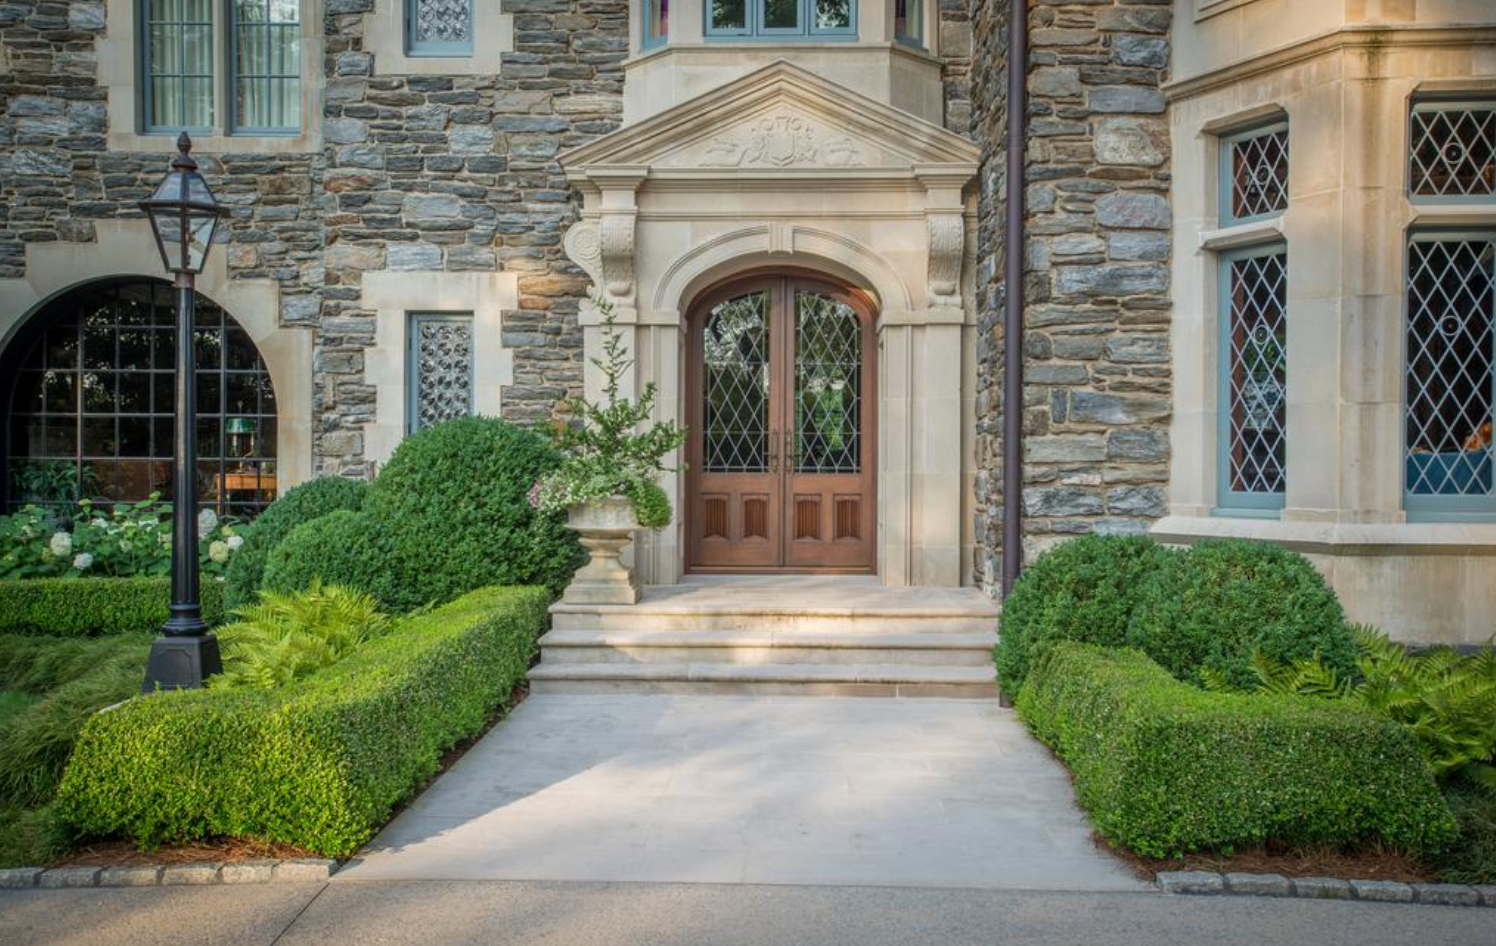 Arched Entrance - Graggamoore Estate, William T. Baker